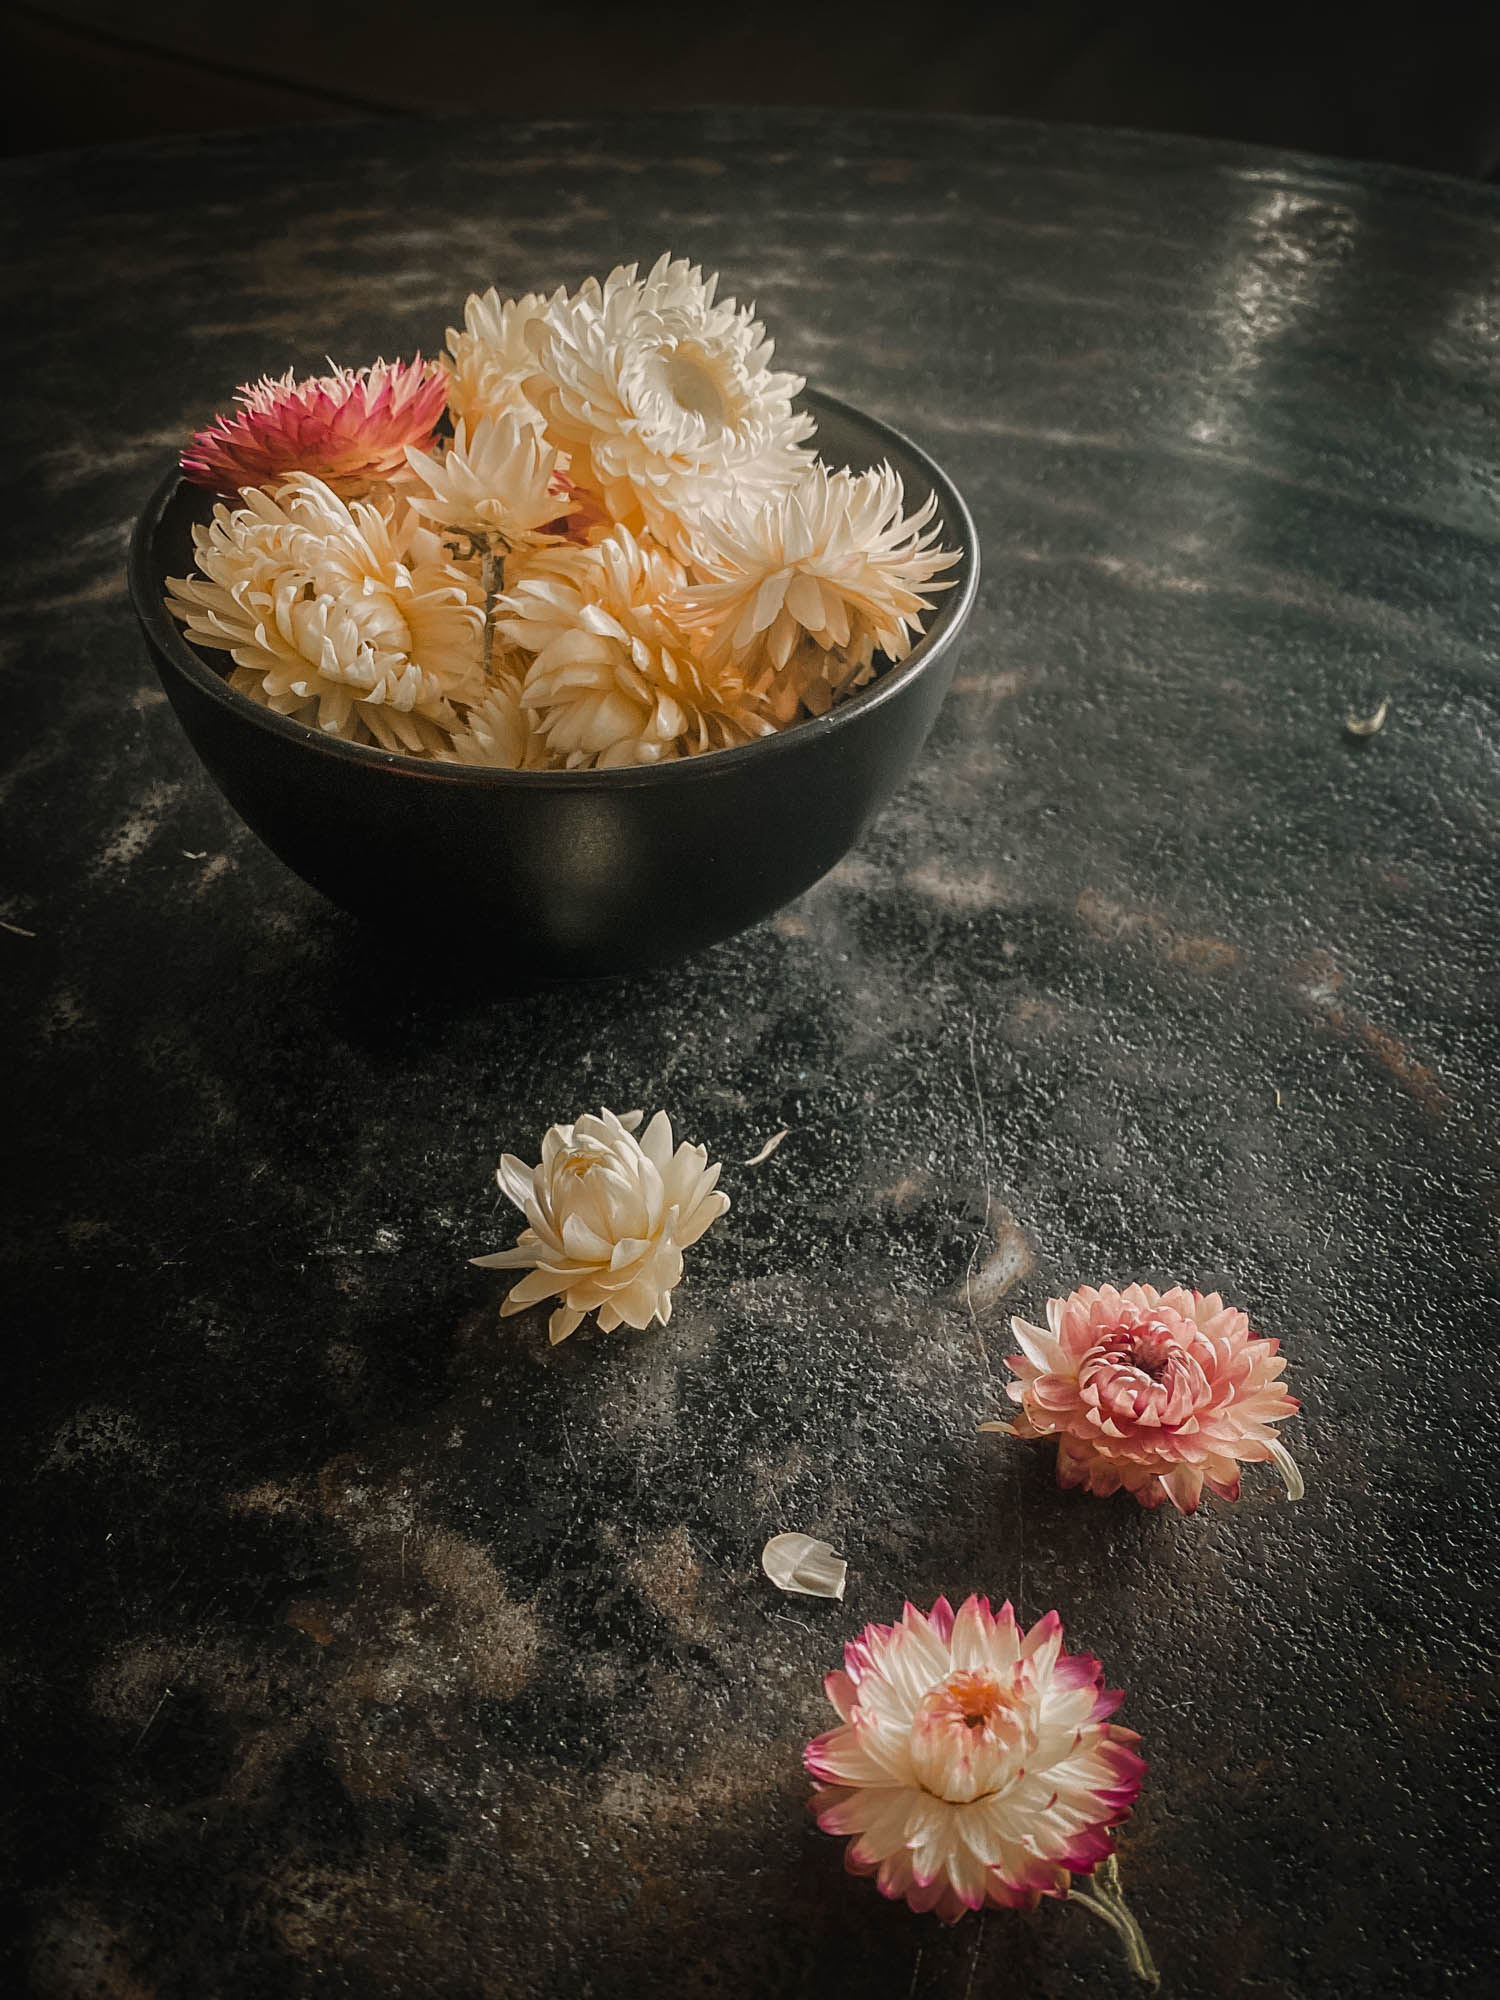 dried strawflowers in a bowl